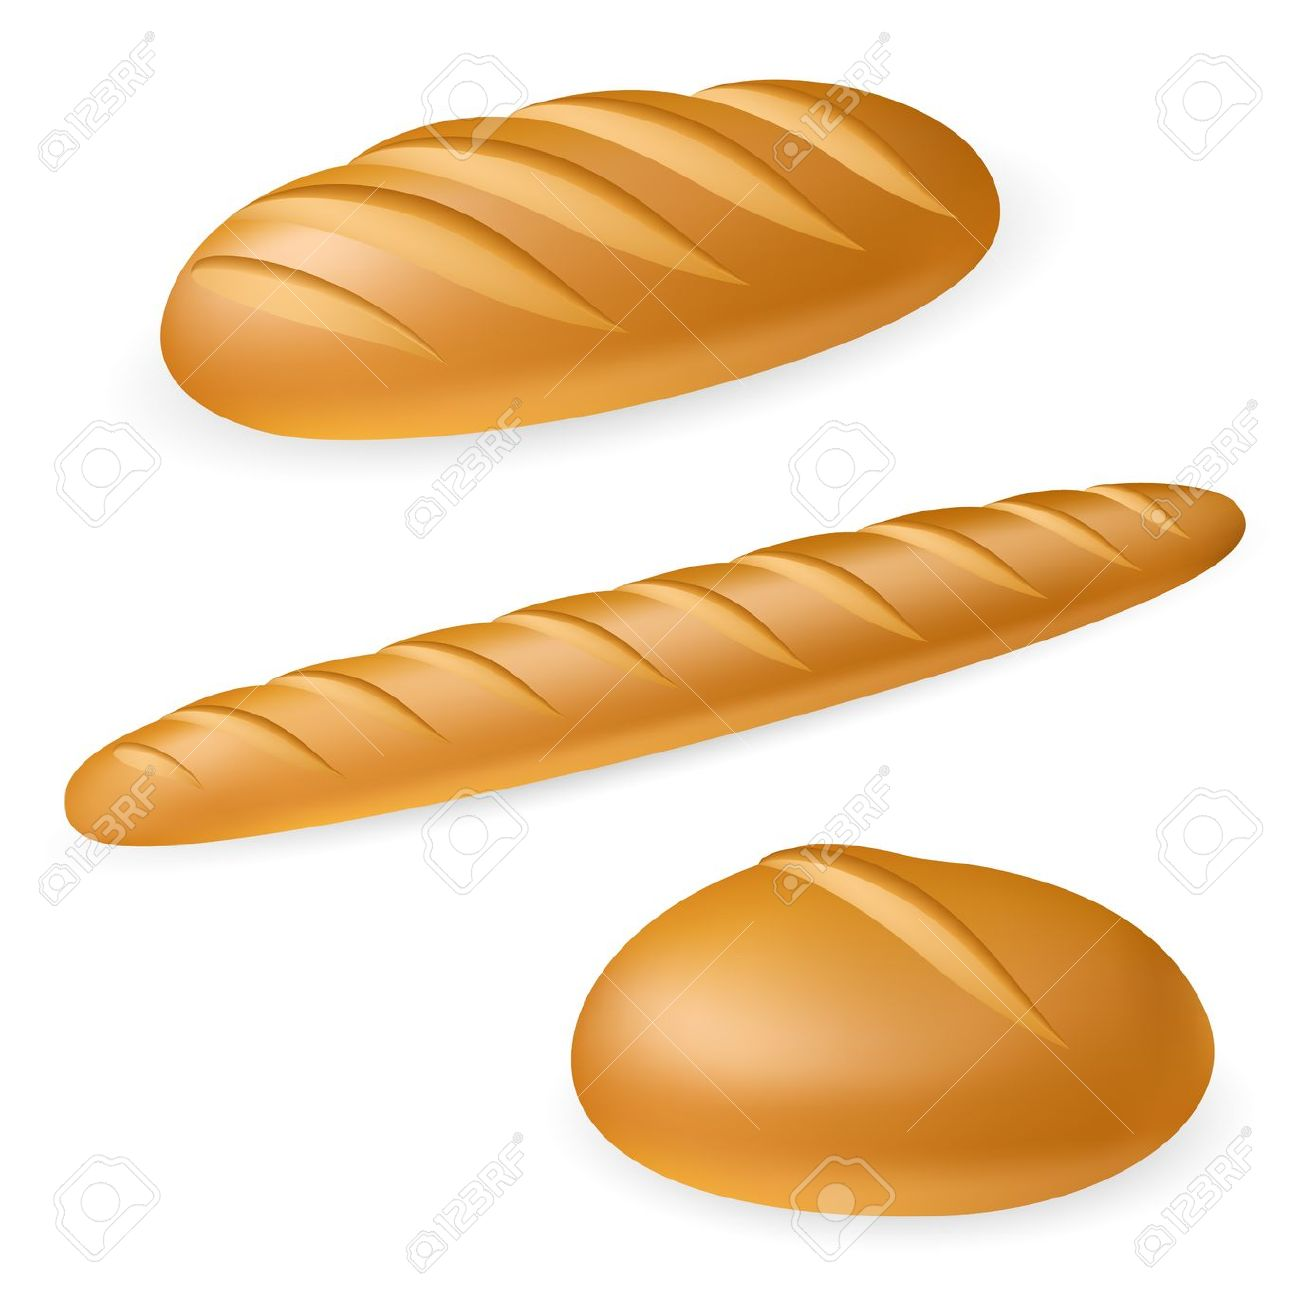 7,715 French Bread Stock Illustrations, Cliparts And Royalty Free.